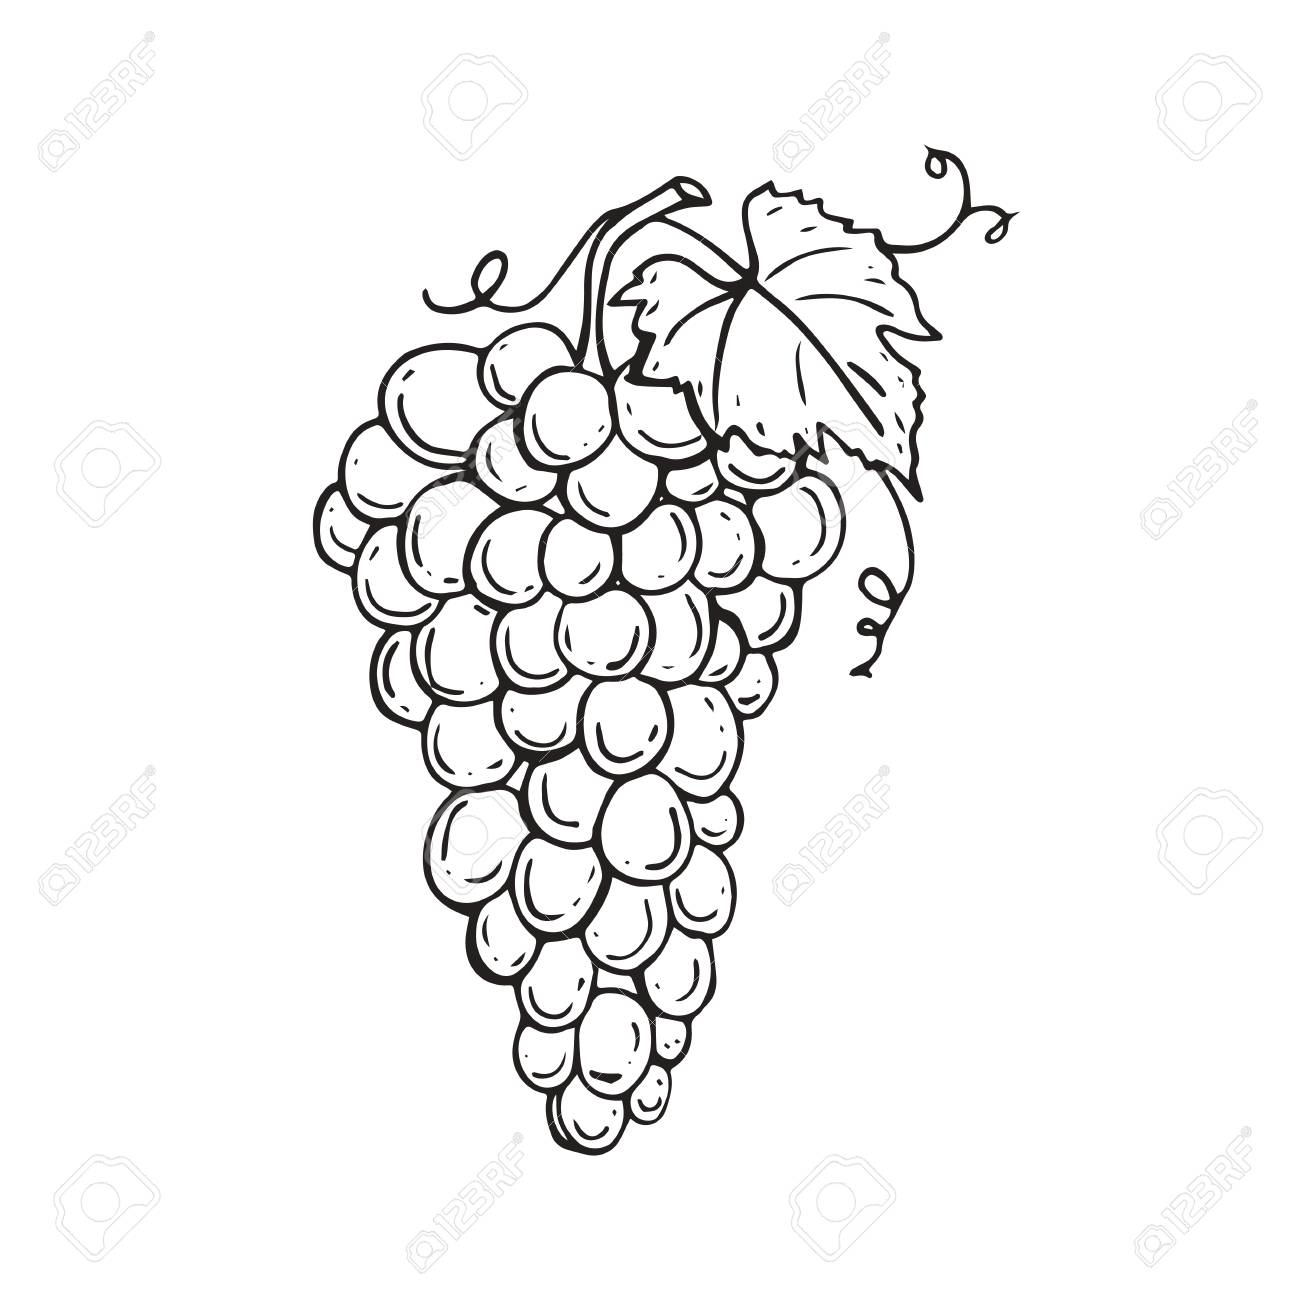 Vector Image Bunch Of Grapes Is Hand Drawn Sketch Of Grapes Royalty Free Cliparts Vectors And Stock Illustration Image 99626389